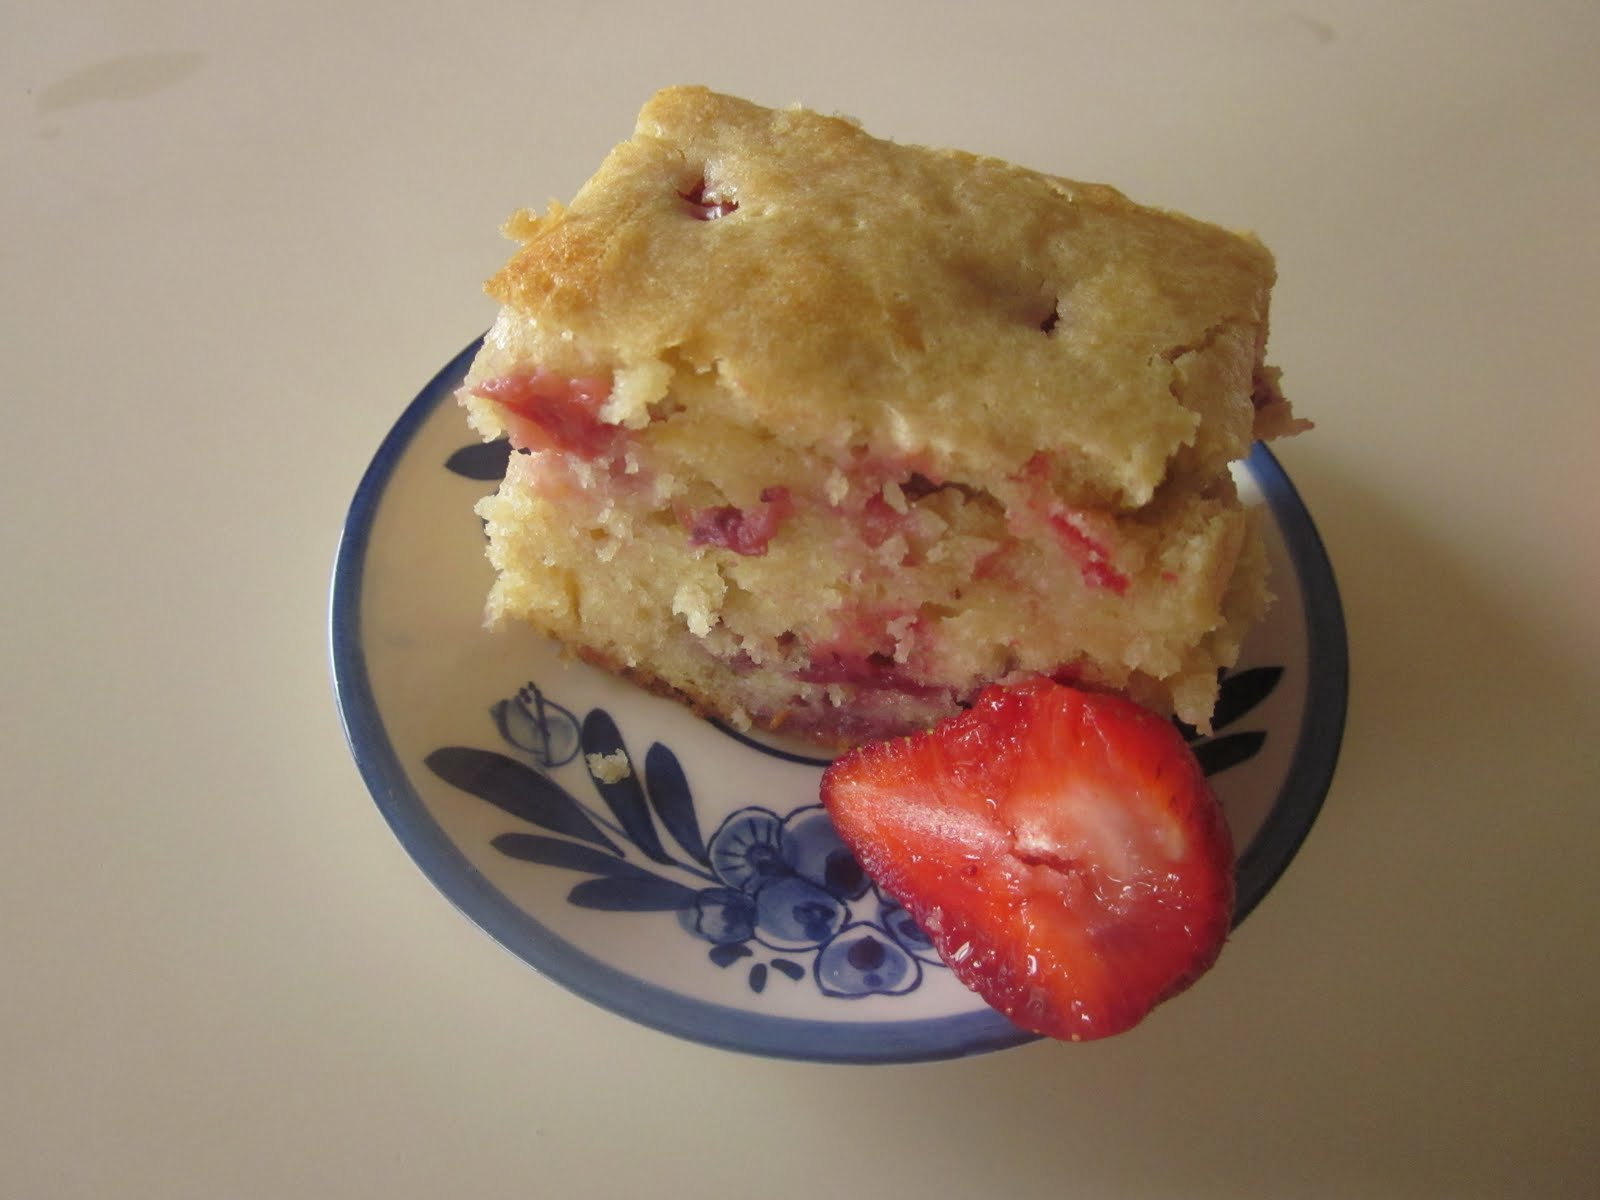 Fiddling thru Fiddlehead: Sour Cream-Strawberry Coffee Cake